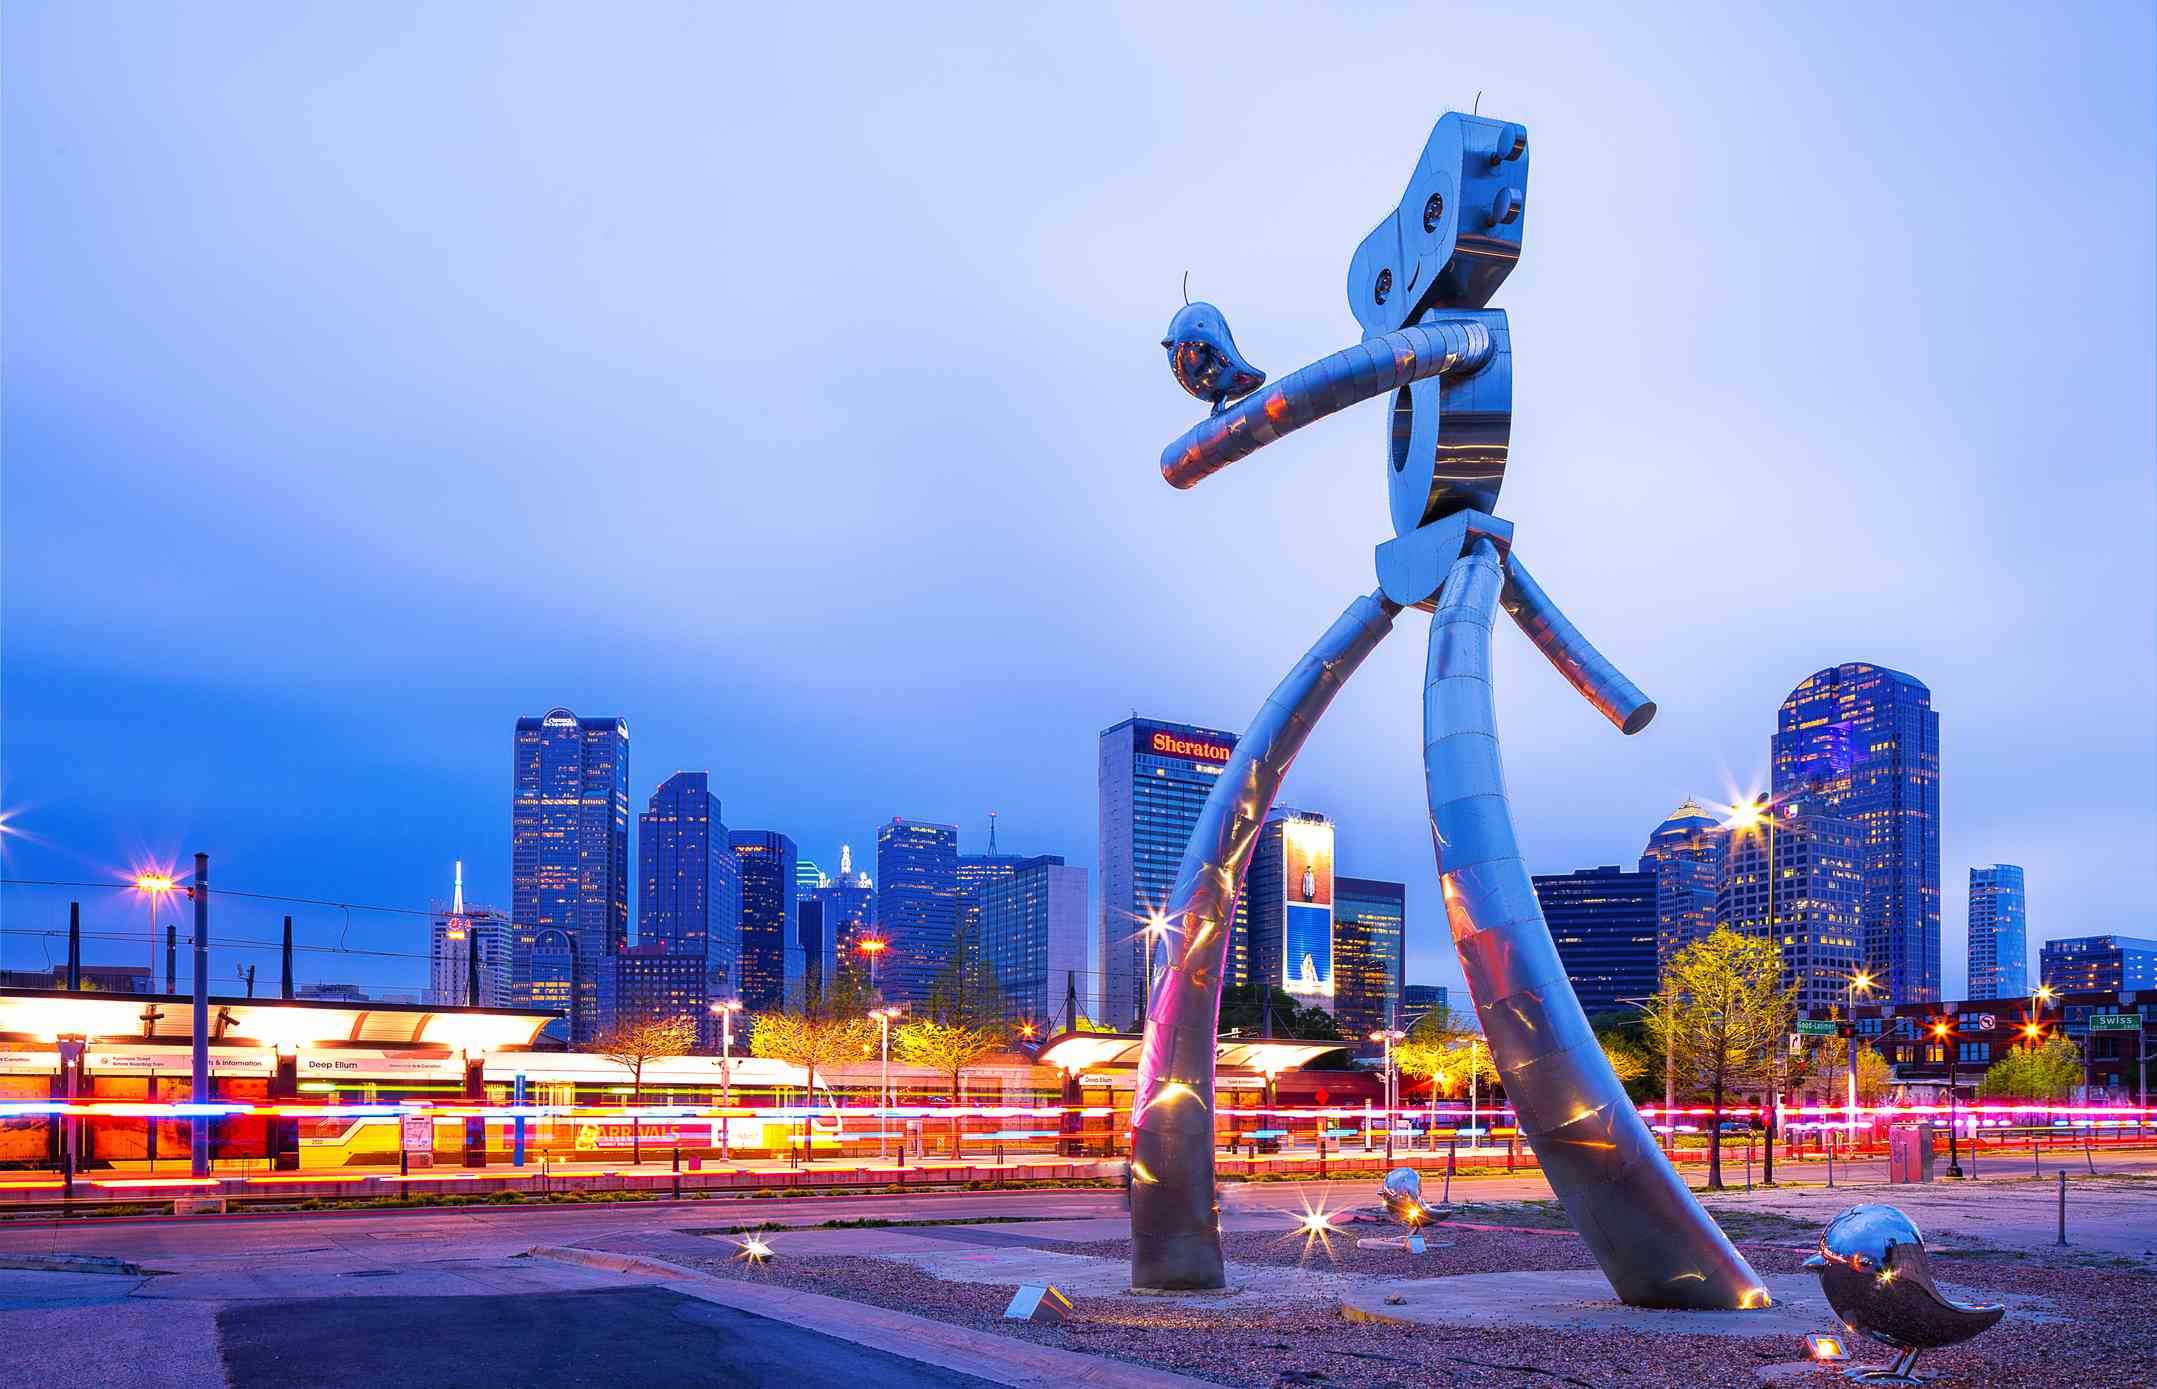 Large metal sculpture . of a robot with a bird on its arm at twilight in Dallas